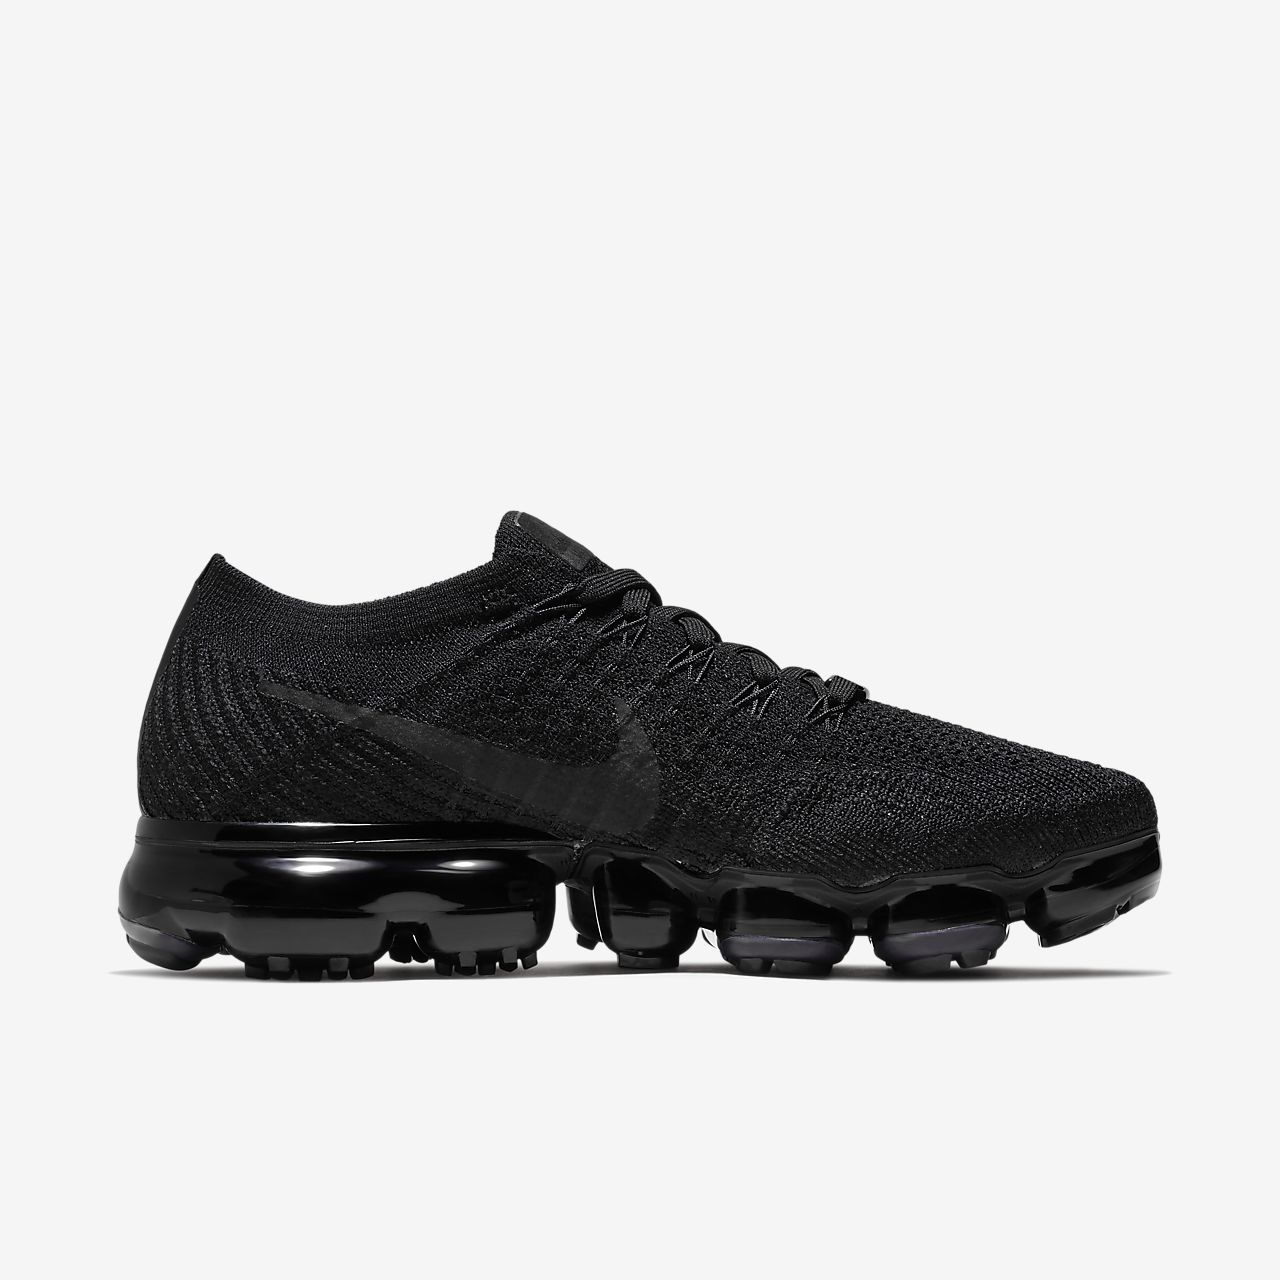 quality design e91e1 a62bd Nike Air VaporMax Flyknit Women's Running Shoe. Nike.com GB